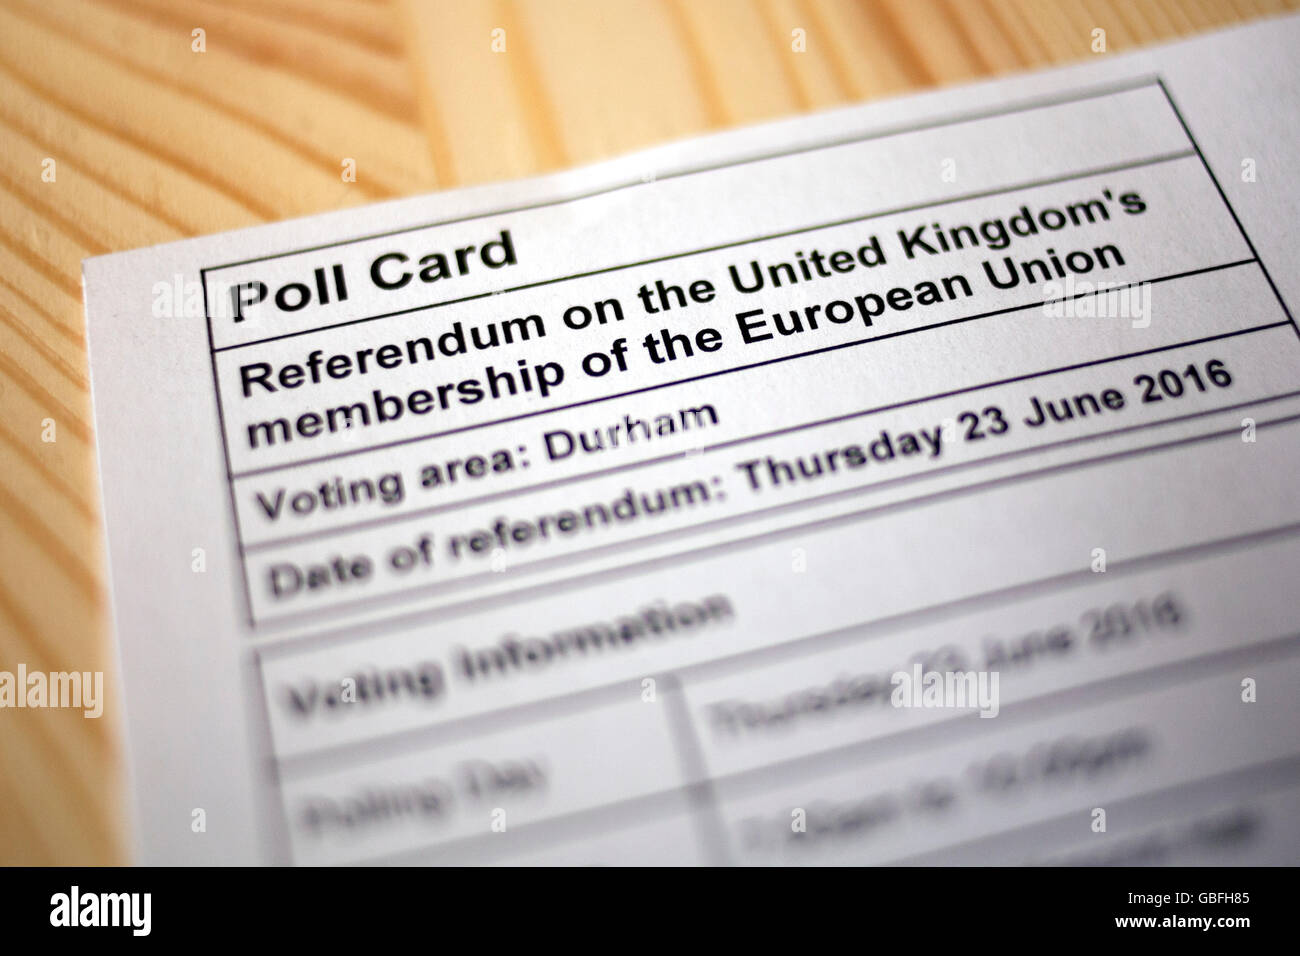 United Kingdom European Union Referendum Polling Card - Stock Image